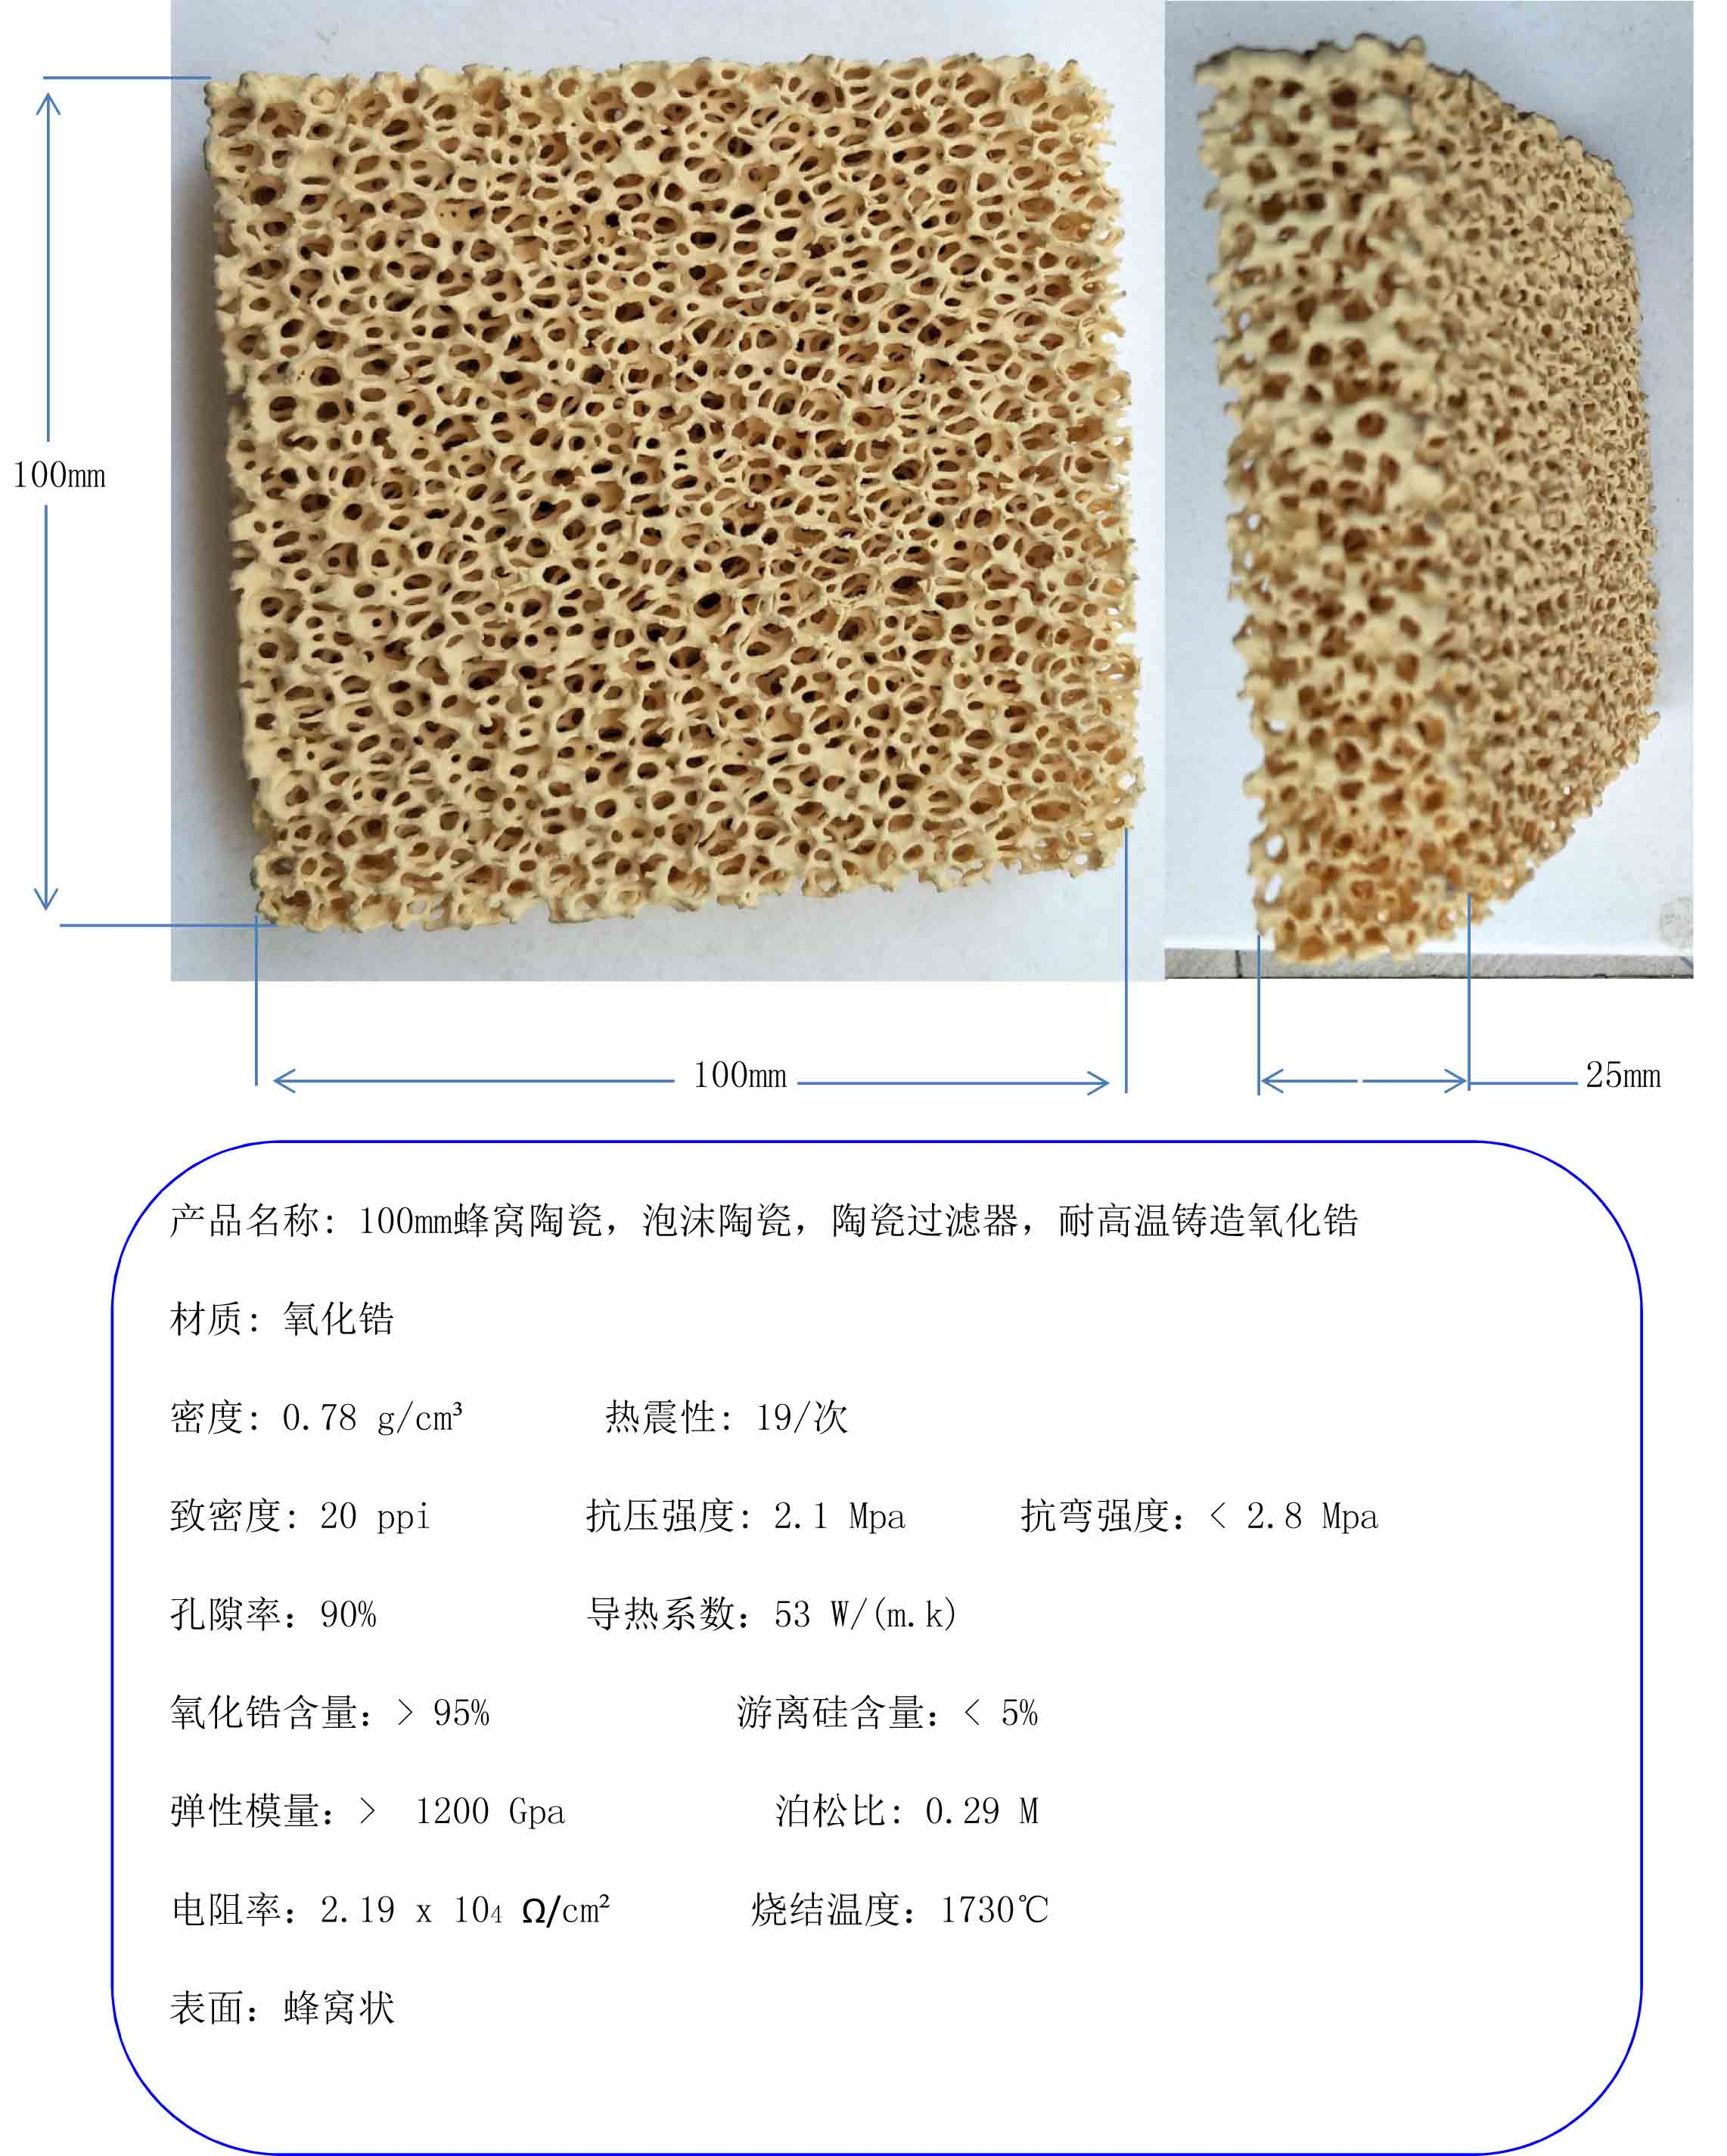 100mm Honeycomb Ceramic, Foam Ceramic, Ceramic Filter, High Temperature Resistant Zirconia<br>